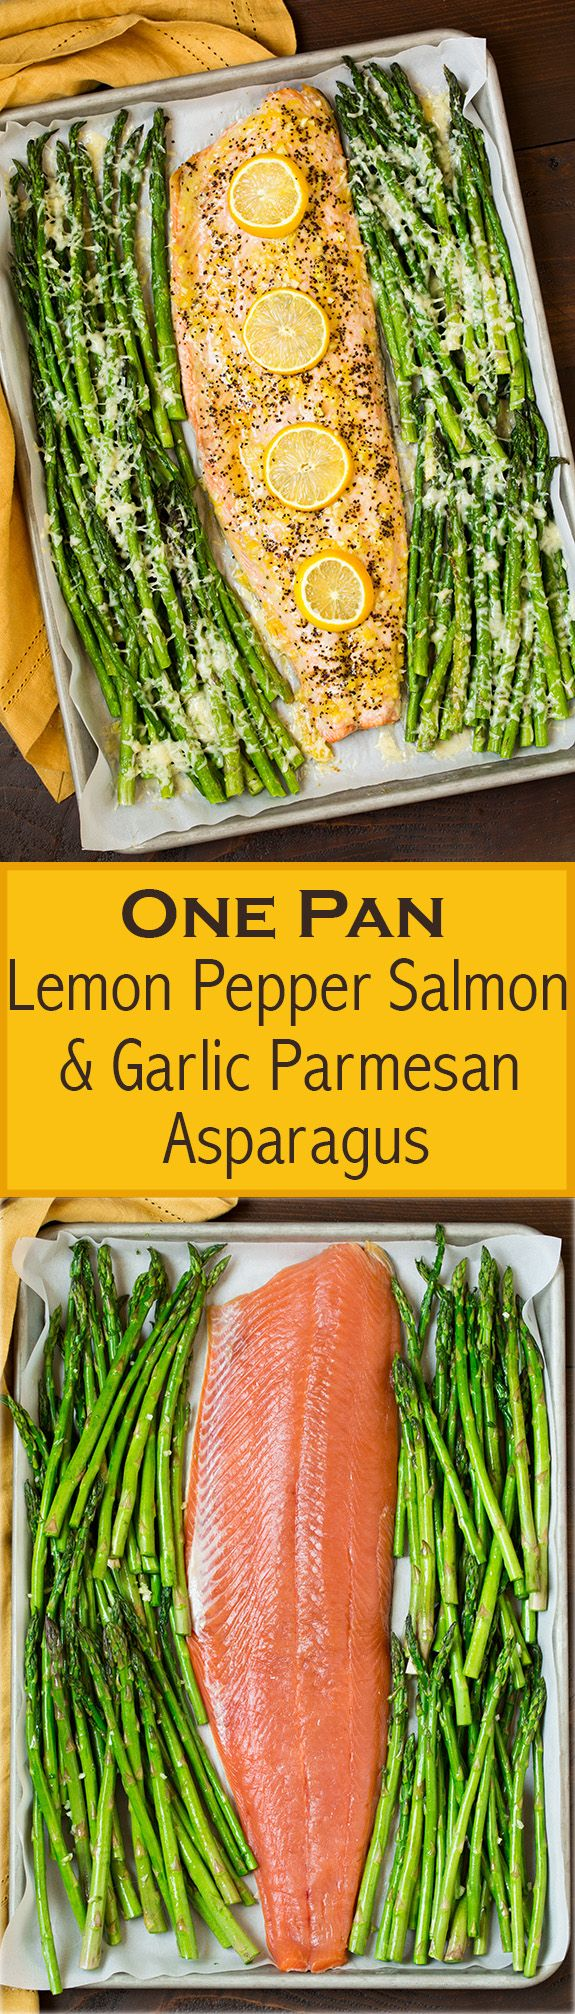 One Pan Roasted Lemon Pepper Salmon and Garlic Parmesan Asparagus - this is so easy to make and the flavor combo of the two is delicious! (Simple Diet Recipes)